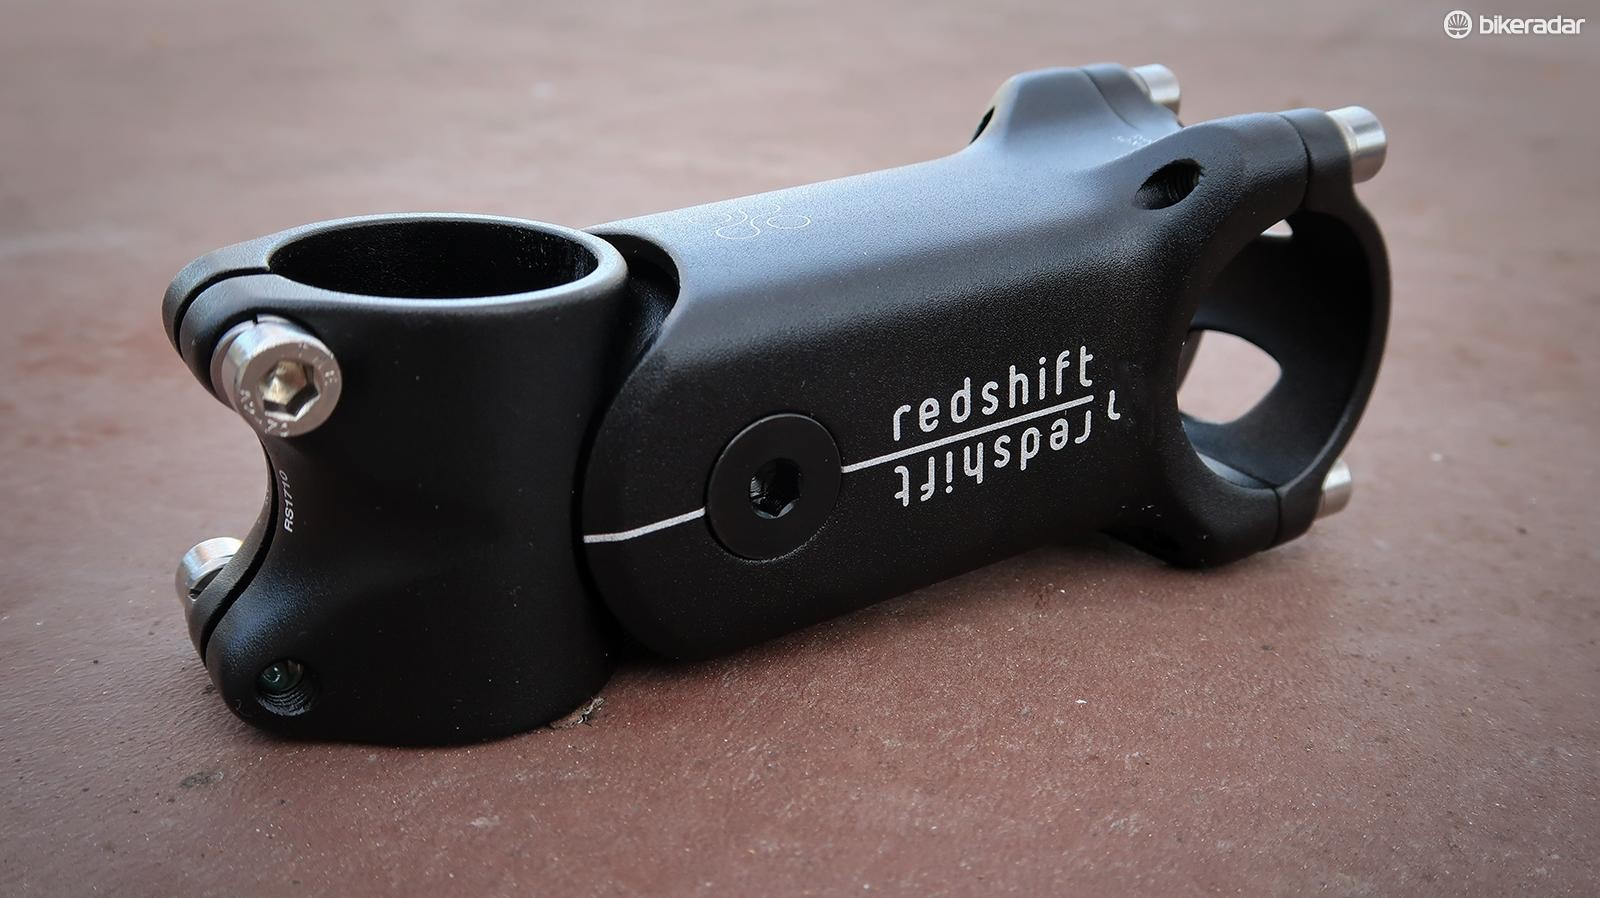 Redshift's ShockStop stem hides its suspension well